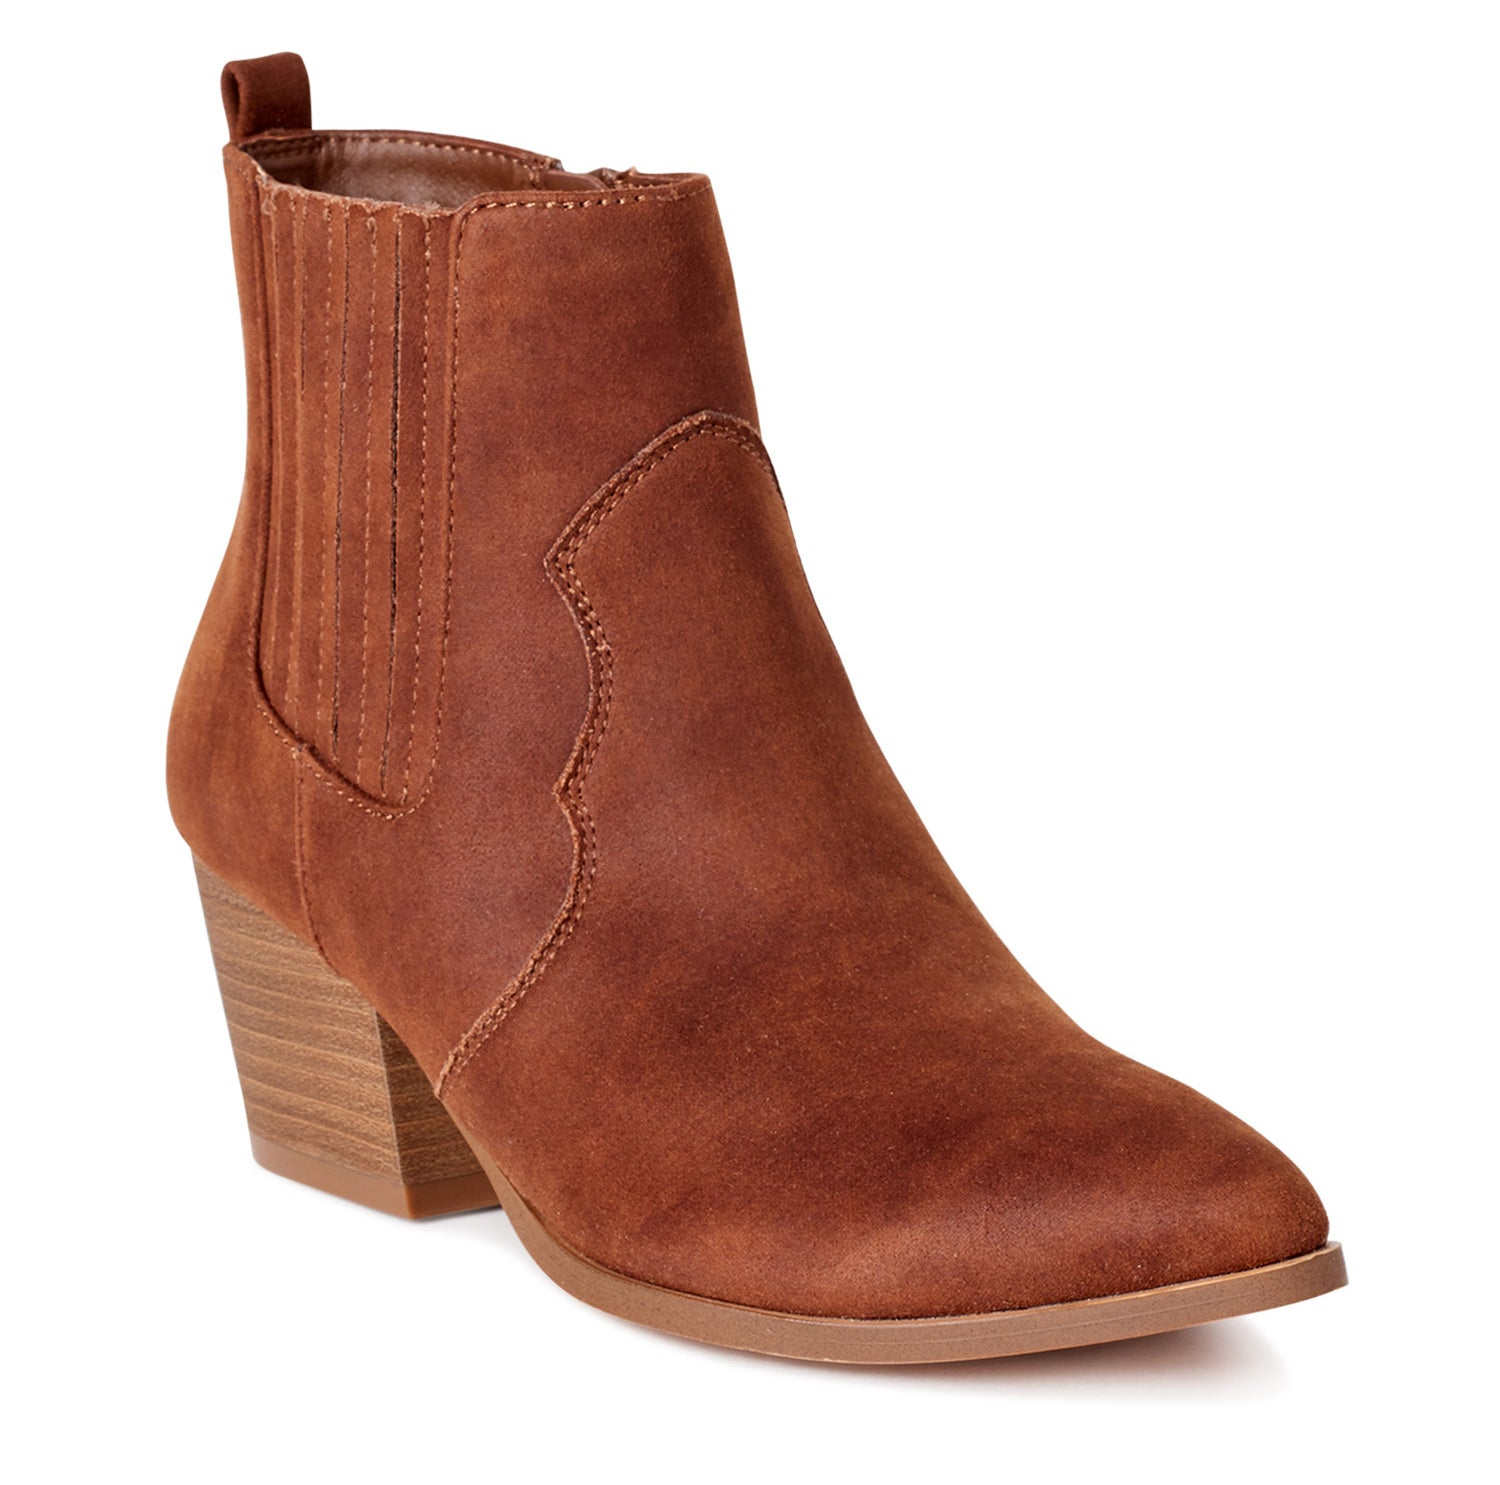 The brown bootie